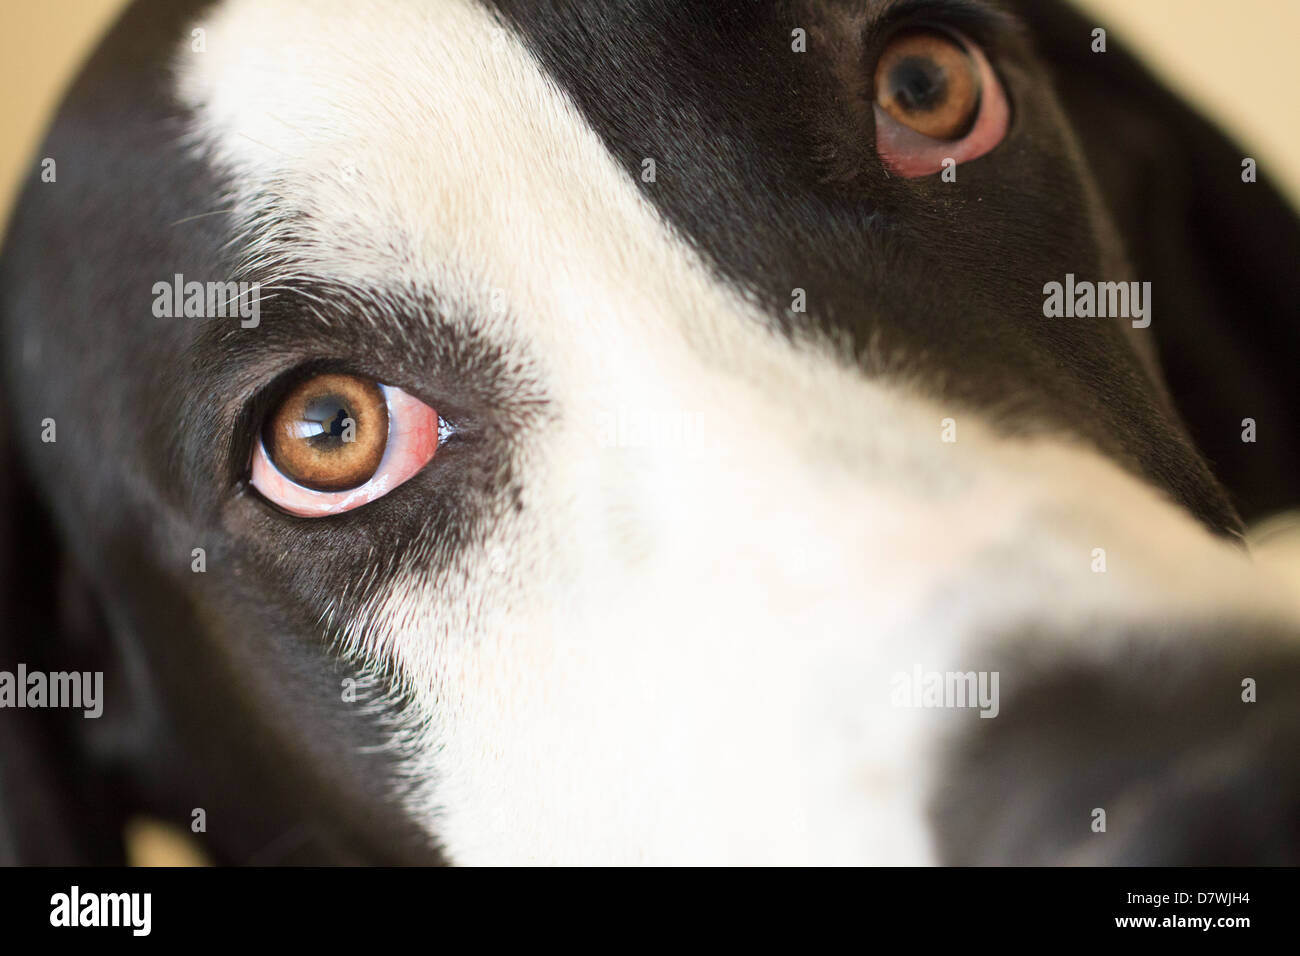 Great Dane Staring - Stock Image